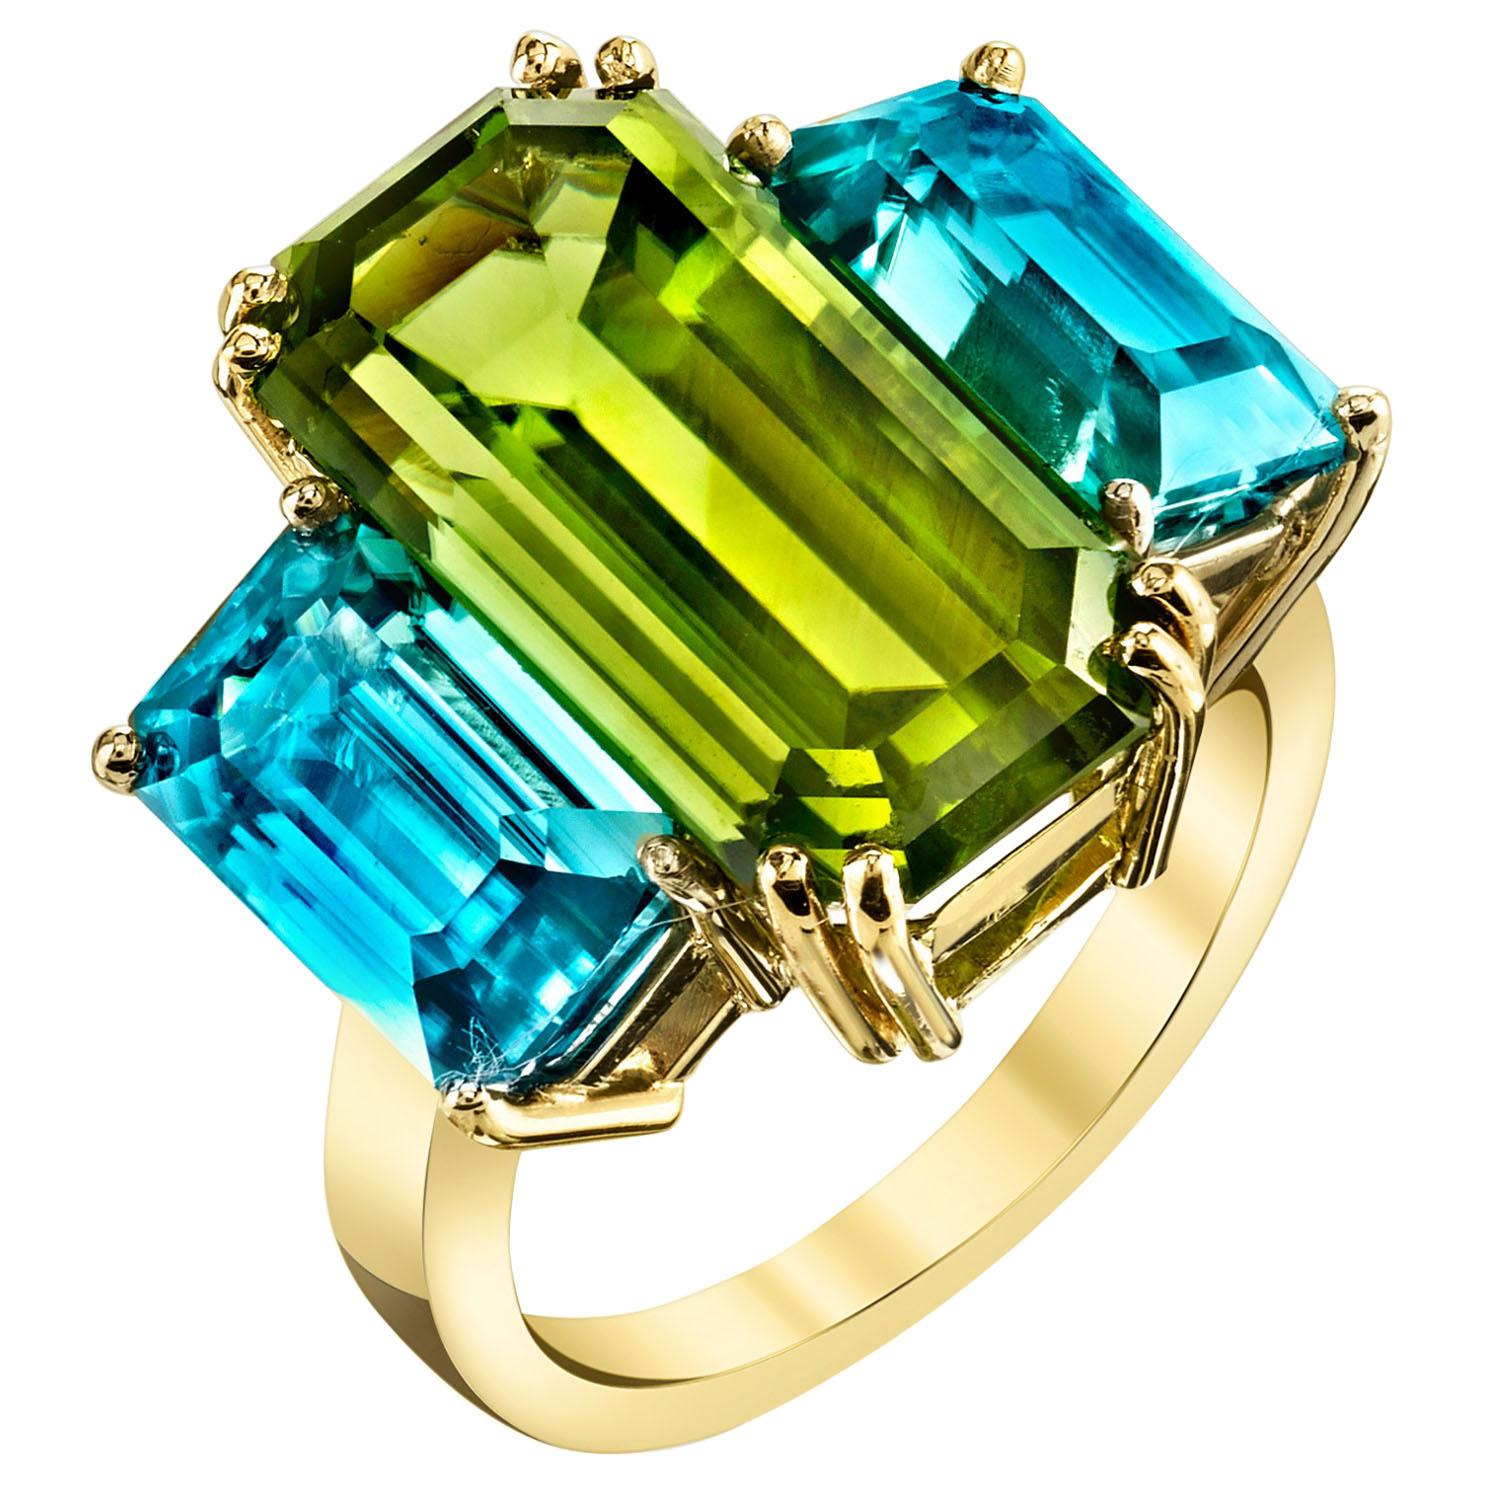 Peridot and Blue Zircon, Yellow and White Gold, Three-Stone Cocktail Ring